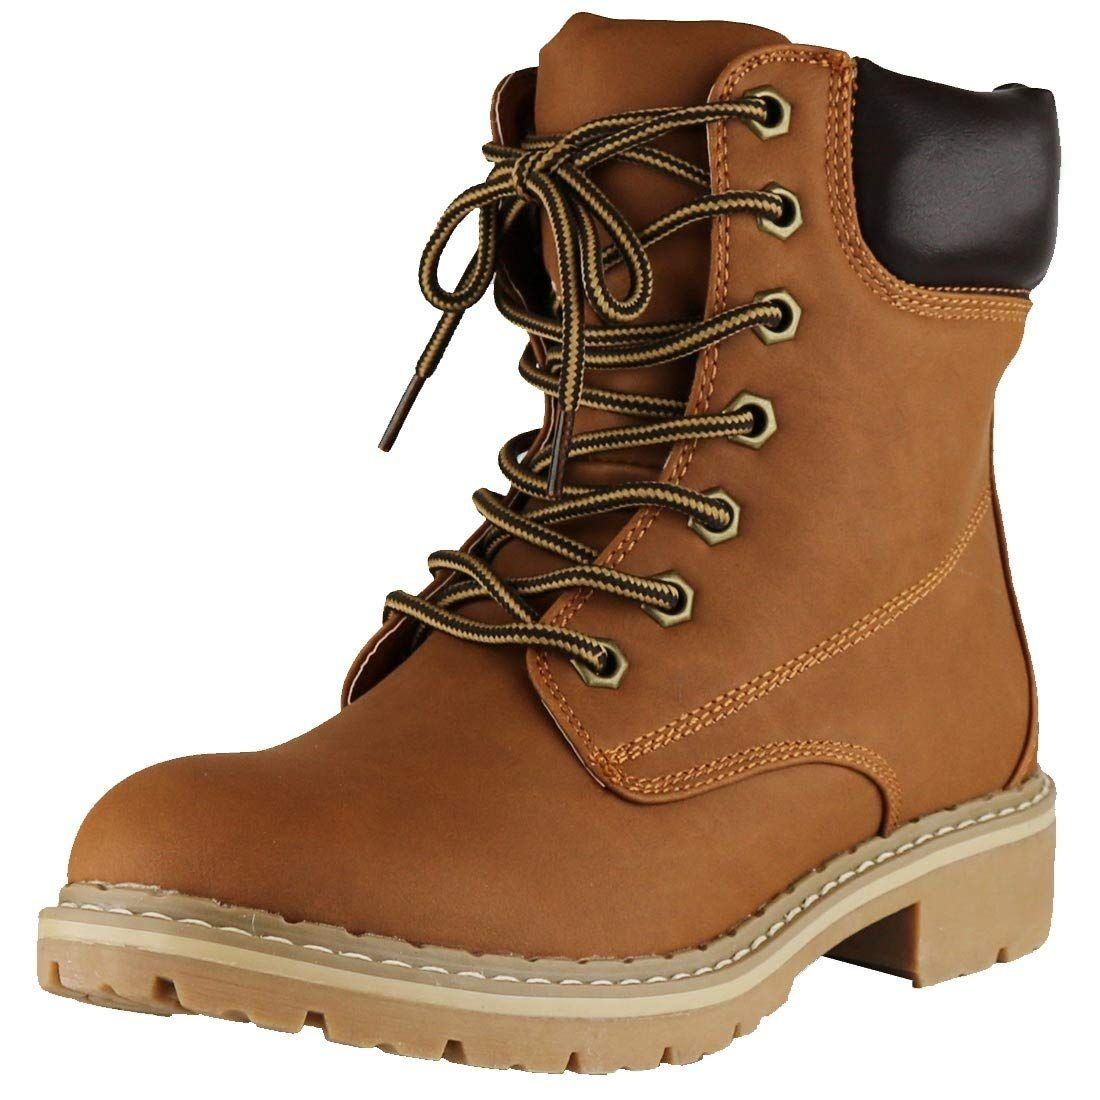 cb7d5f7c9ed Cambridge Select Women s Work Combat Military Mid Calf Lug Sole Boot --  Details can be found by clicking on the image. (This is an affiliate link)